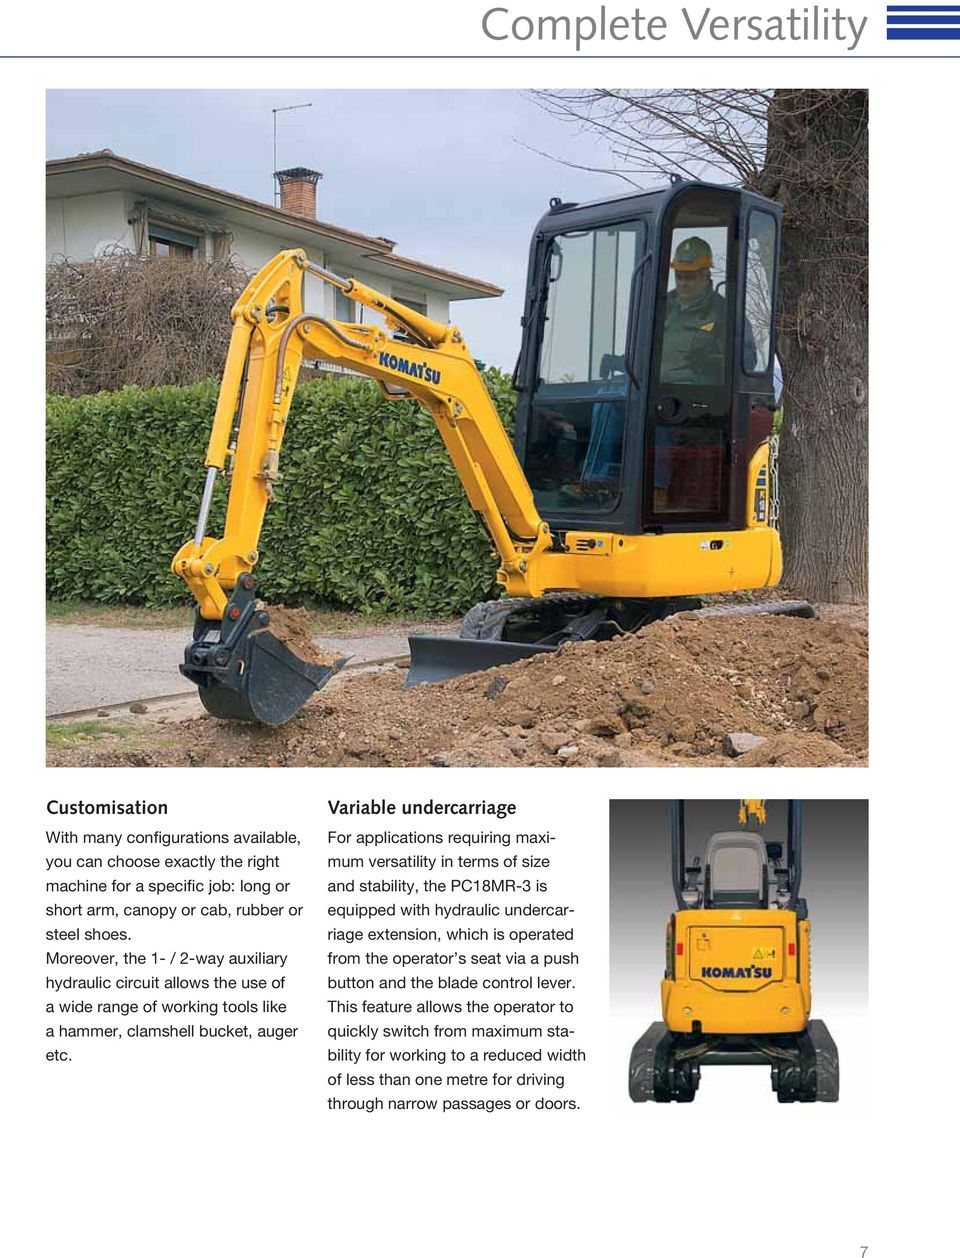 Variable undercarriage For applications requiring maximum versatility in terms of size and stability, the PC18MR-3 is equipped with hydraulic undercarriage extension, which is operated from